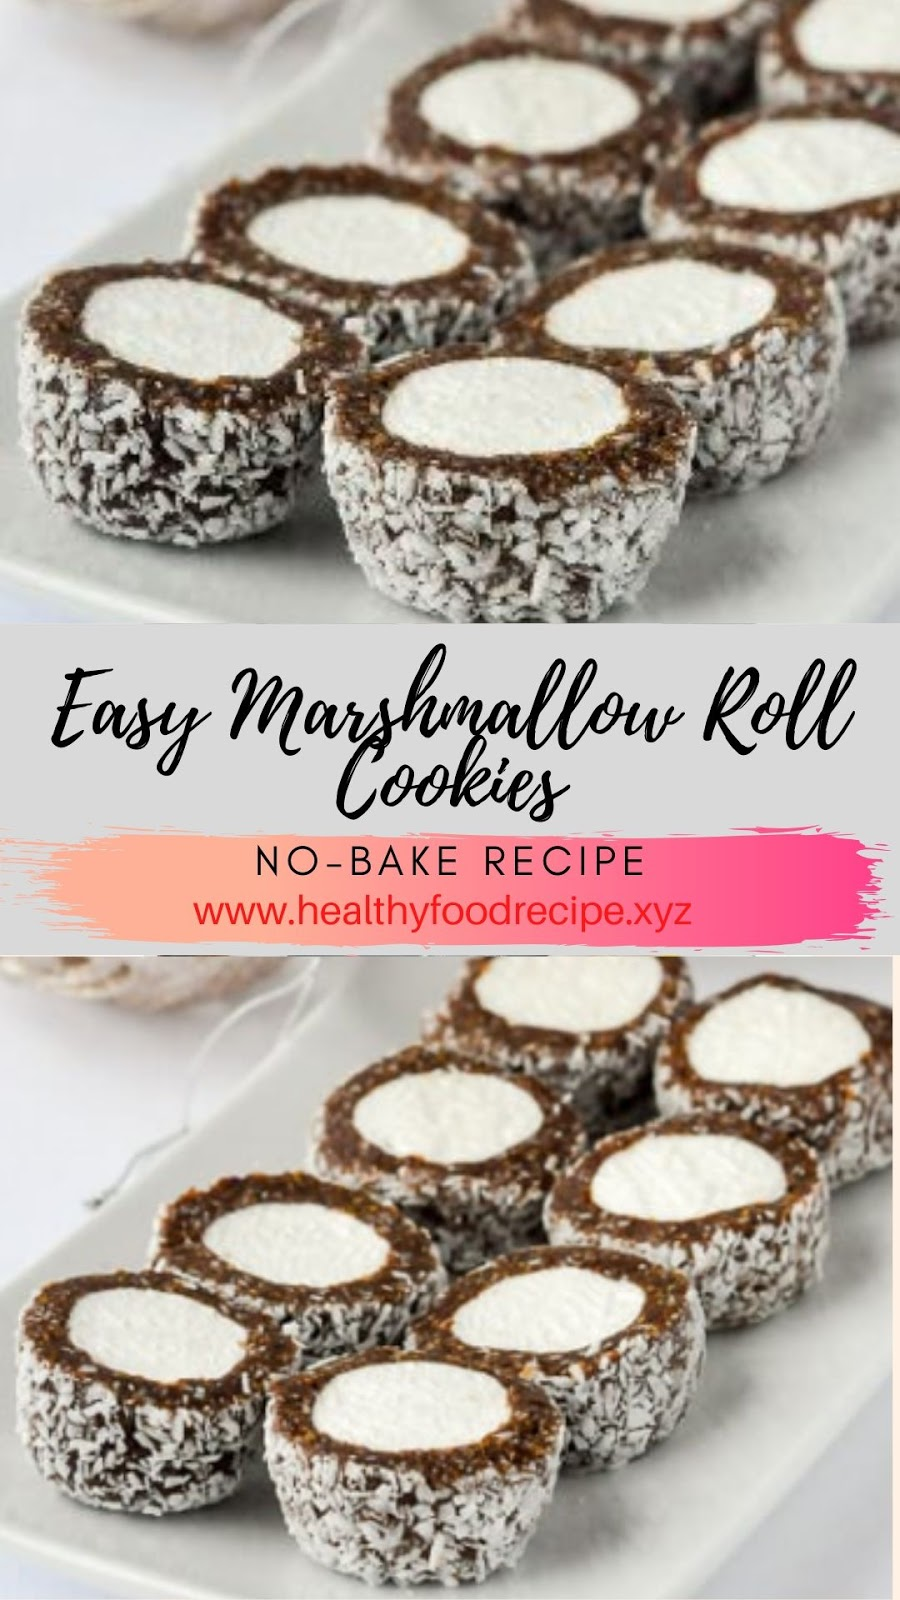 Easy Marshmallow Roll Cookies No-Bake Recipe